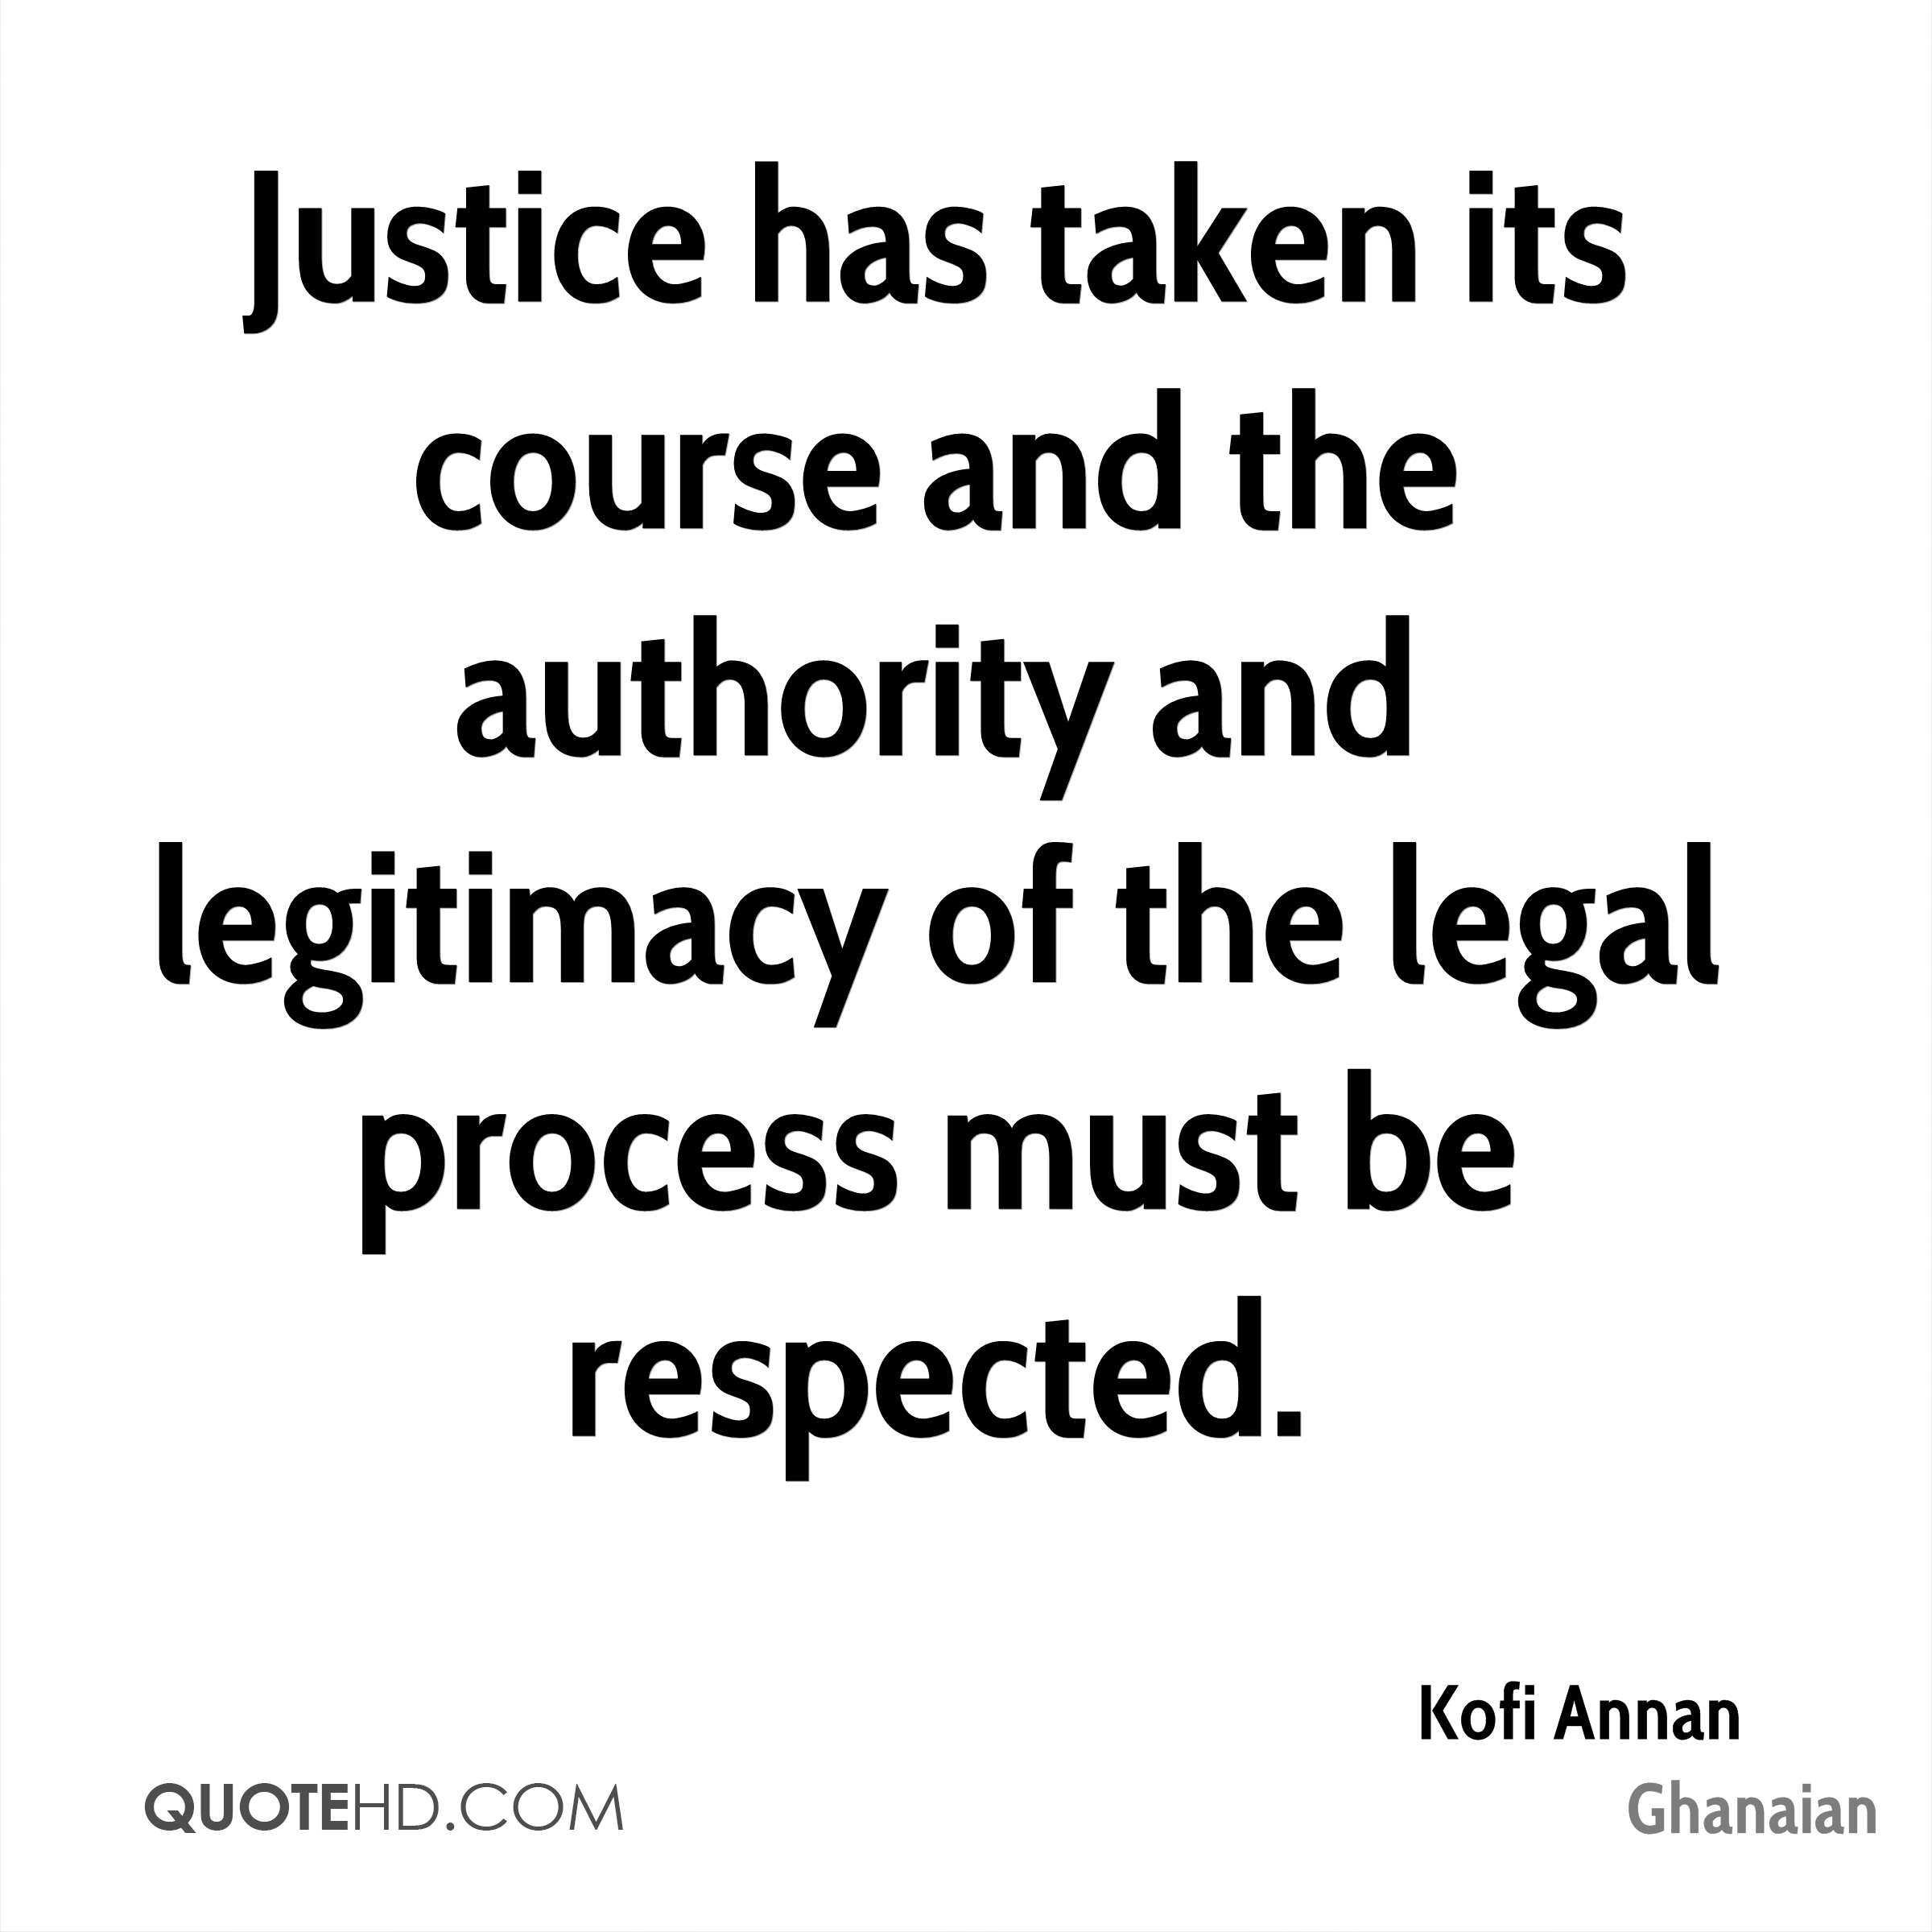 Justice has taken its course and the authority and legitimacy of the legal process must be respected.